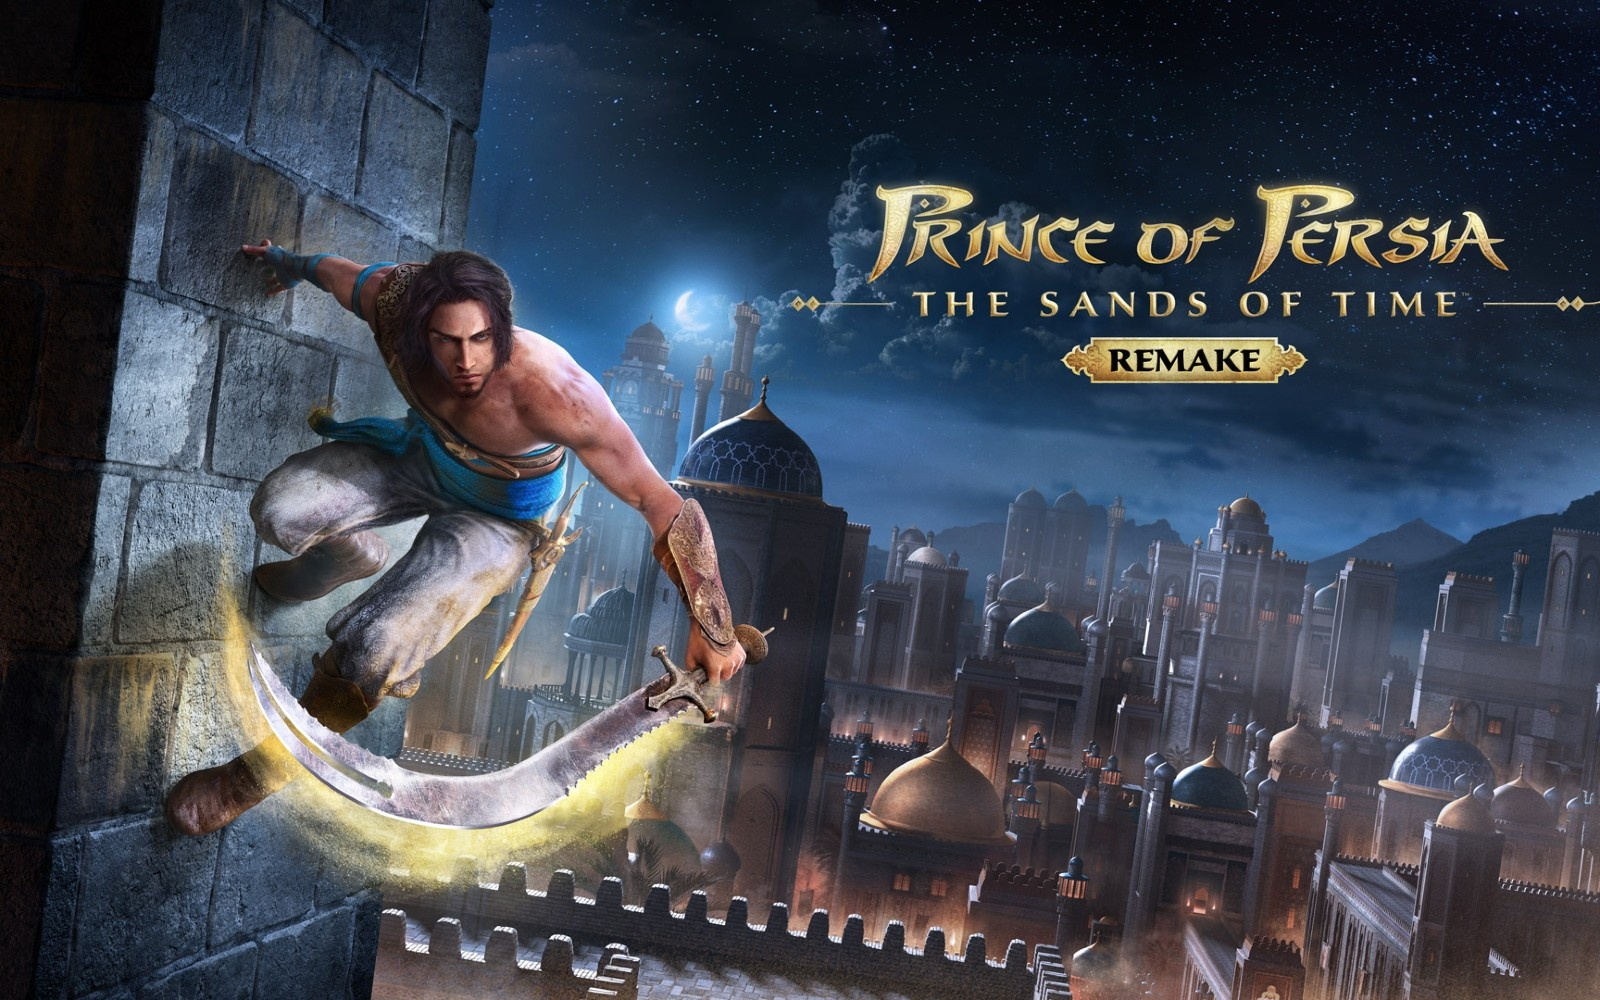 Games releasing in January 2021, Prince of Persia Remake